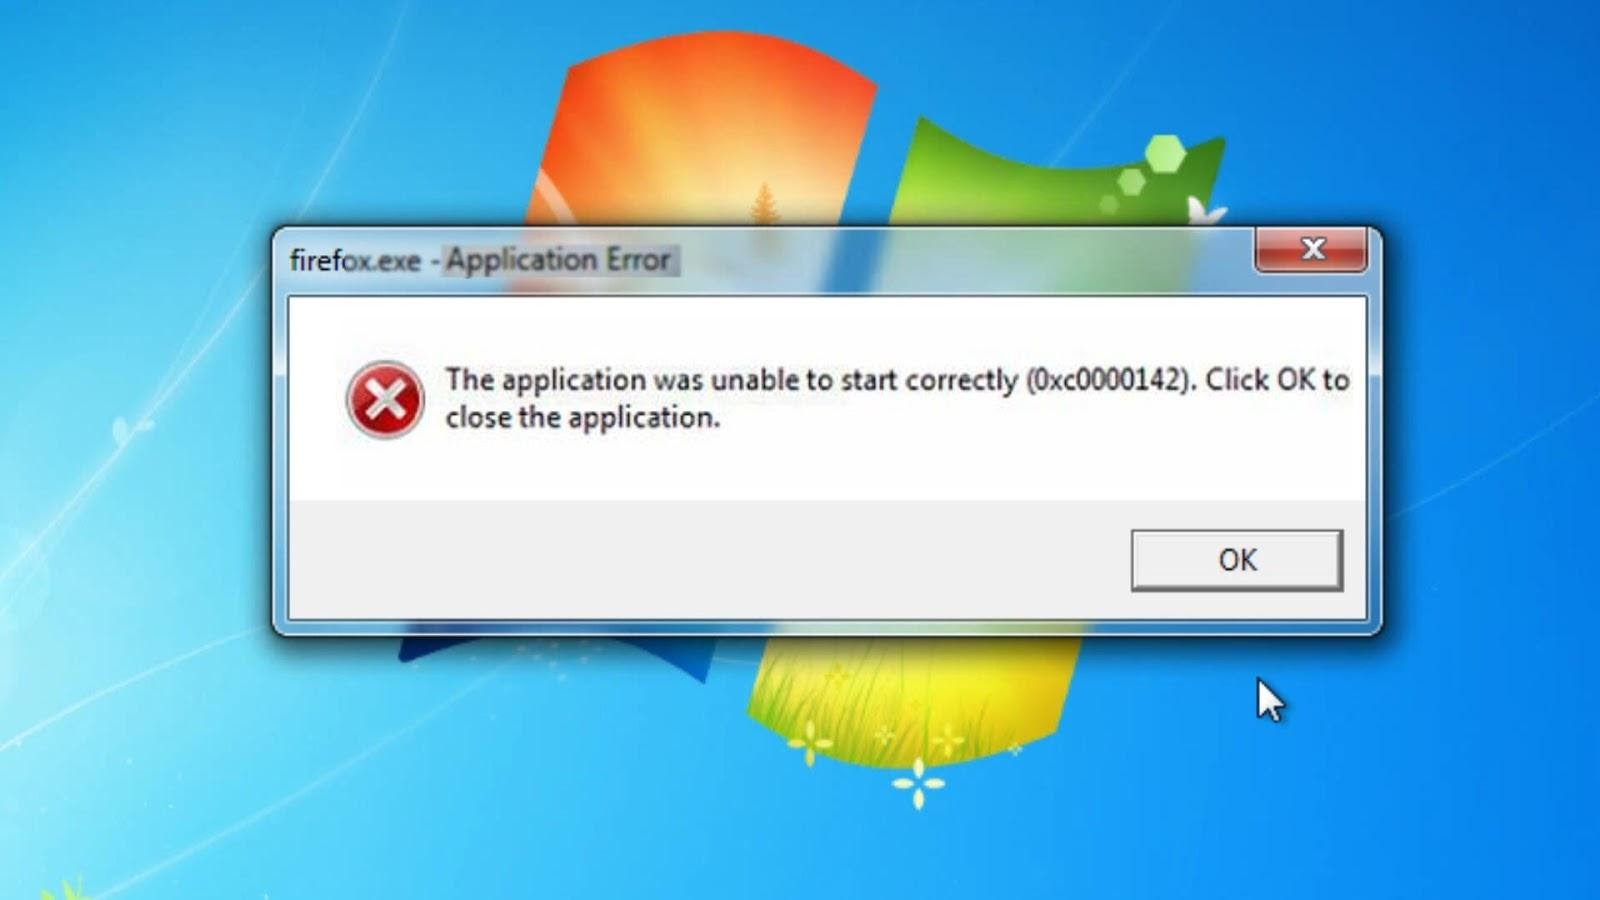 The Application Was Unable To Start Correctly 0xc00007b Win 10 là lỗi phổ biến